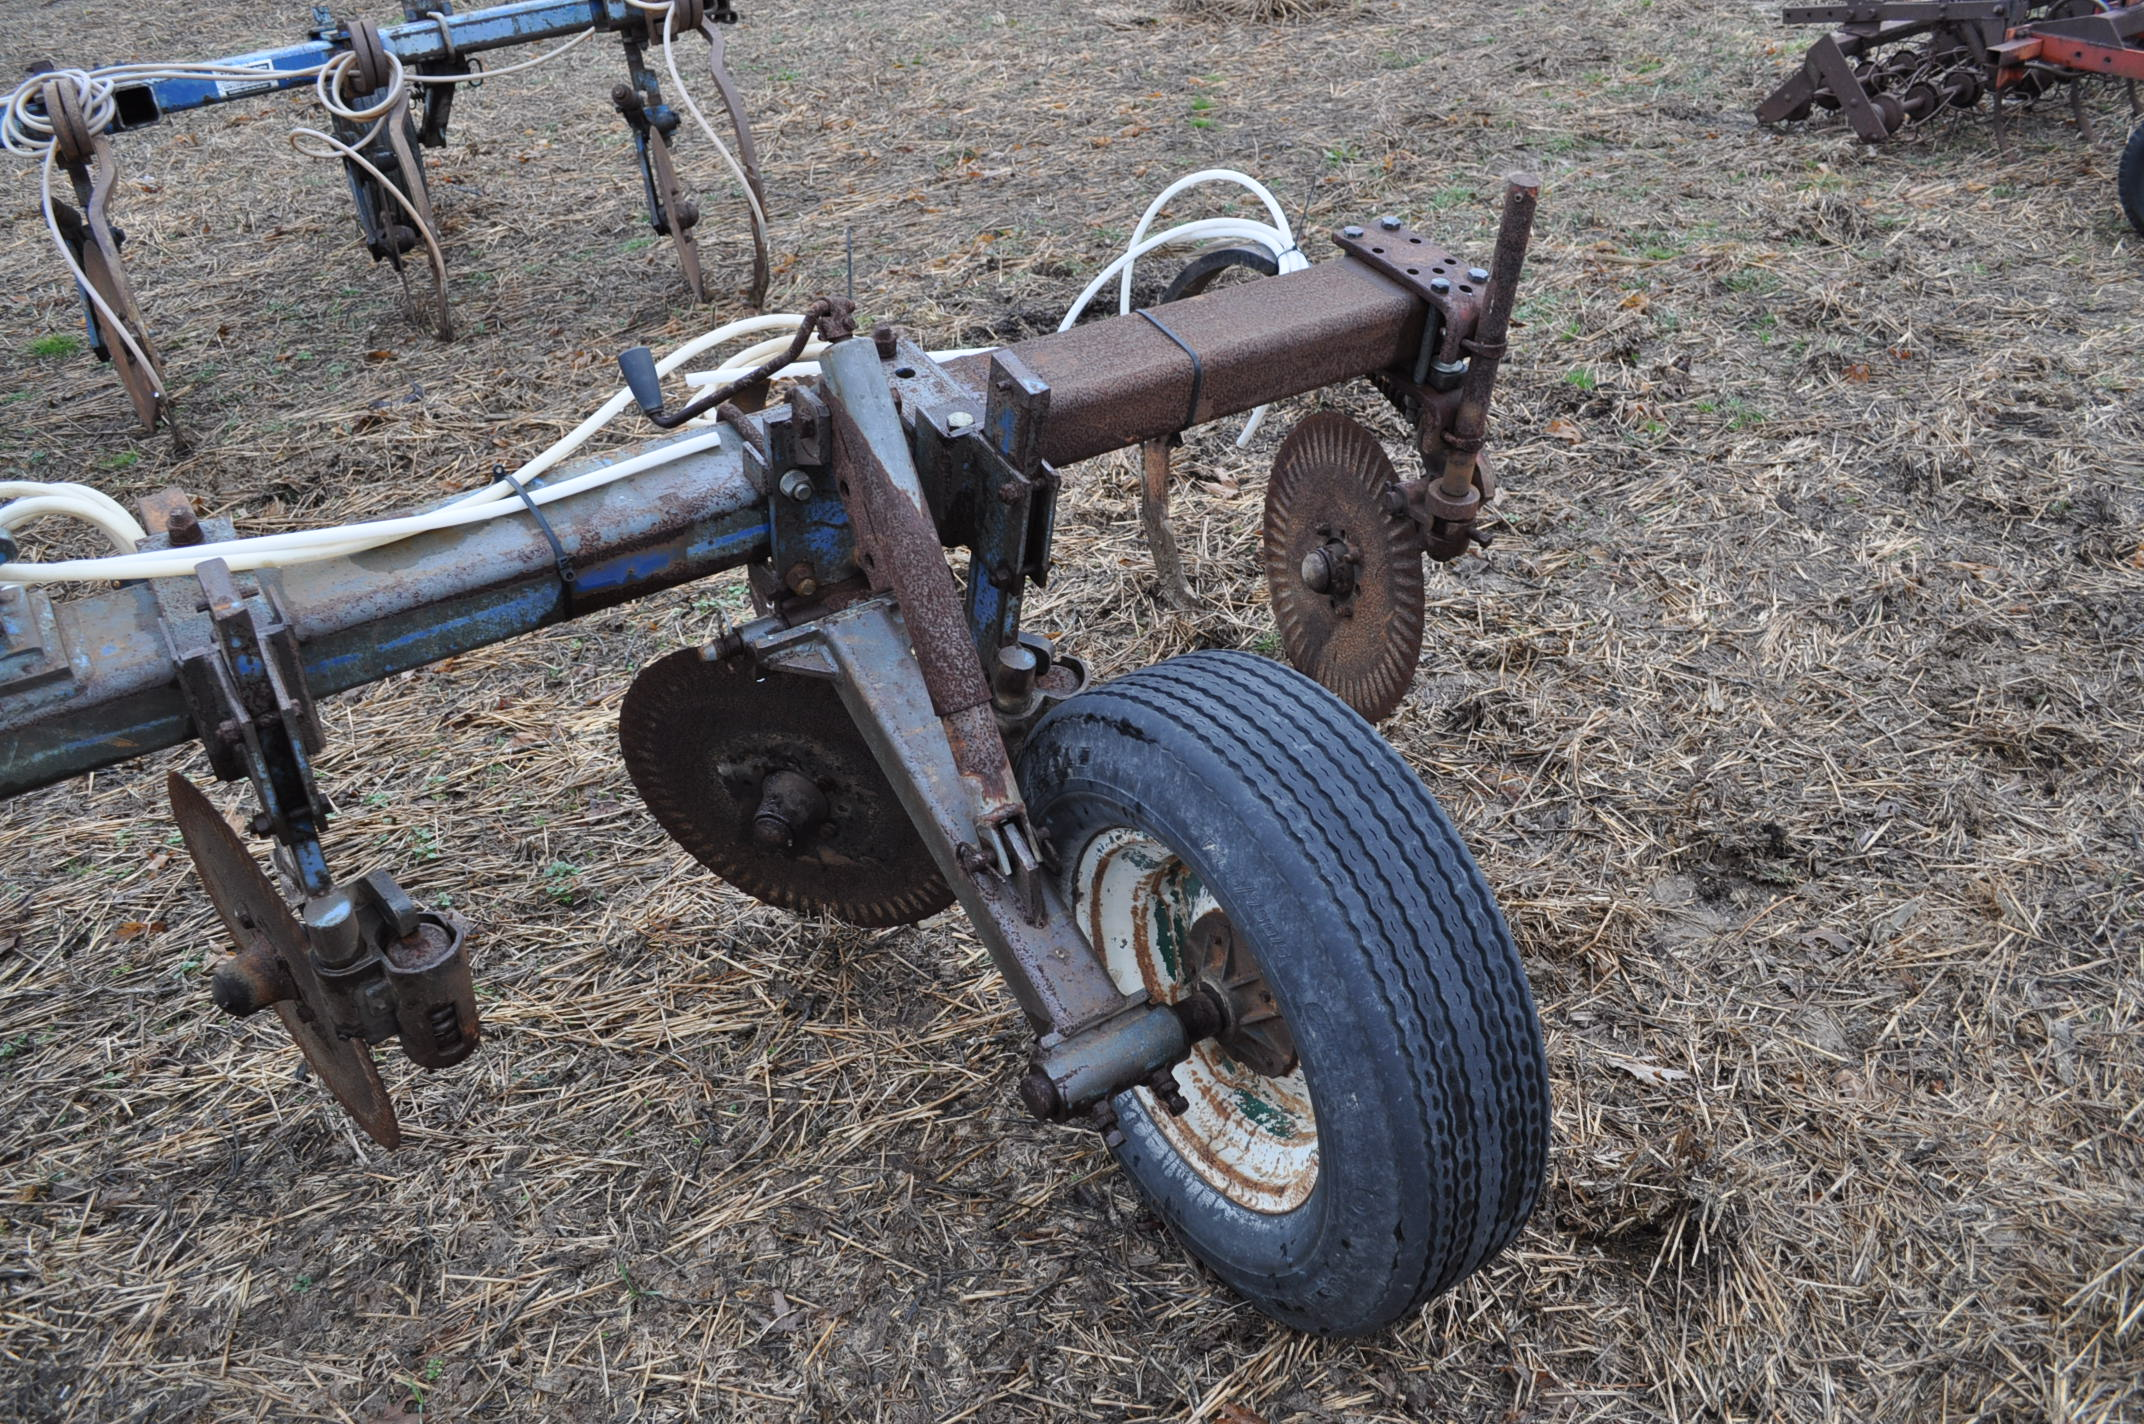 11-shank Blu Jet NH3 bar, 3 pt, hyd fold, gauge wheels, rear hitch, leading coulters - Image 8 of 9